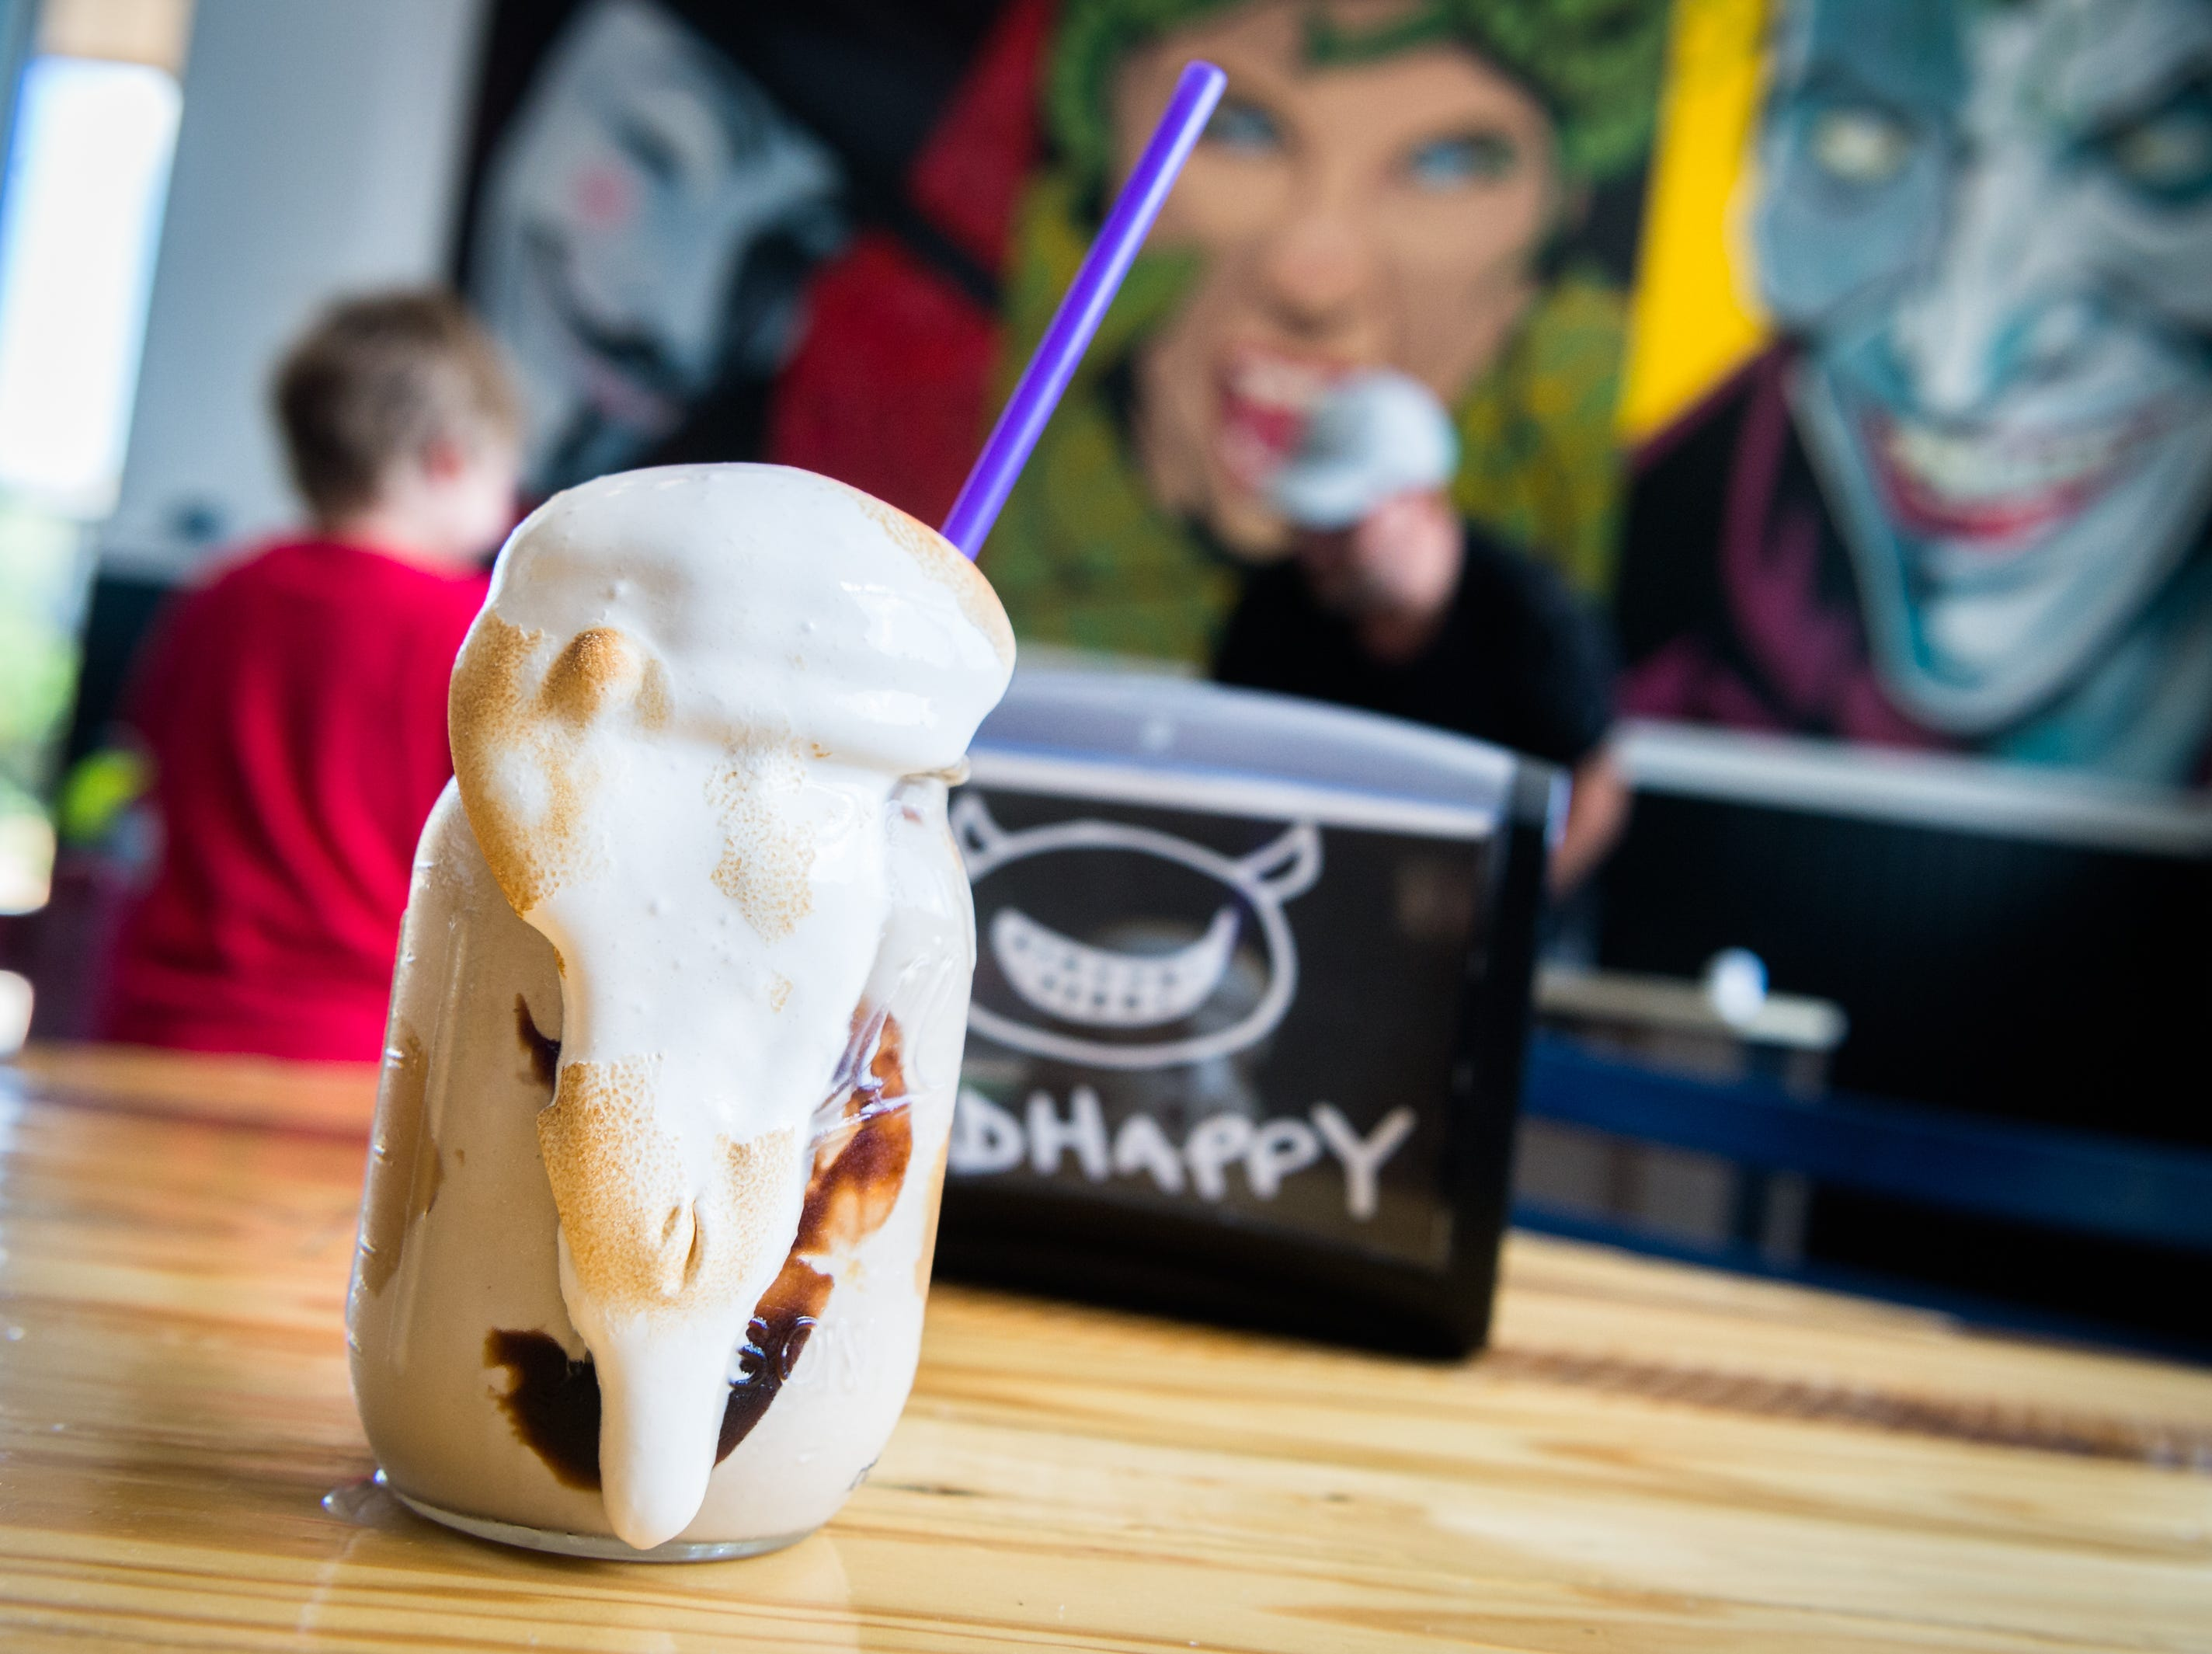 A chocolate, peanut butter and marshmallow shake offered at BadHappy Poutine on Merrimon Avenue in Asheville.